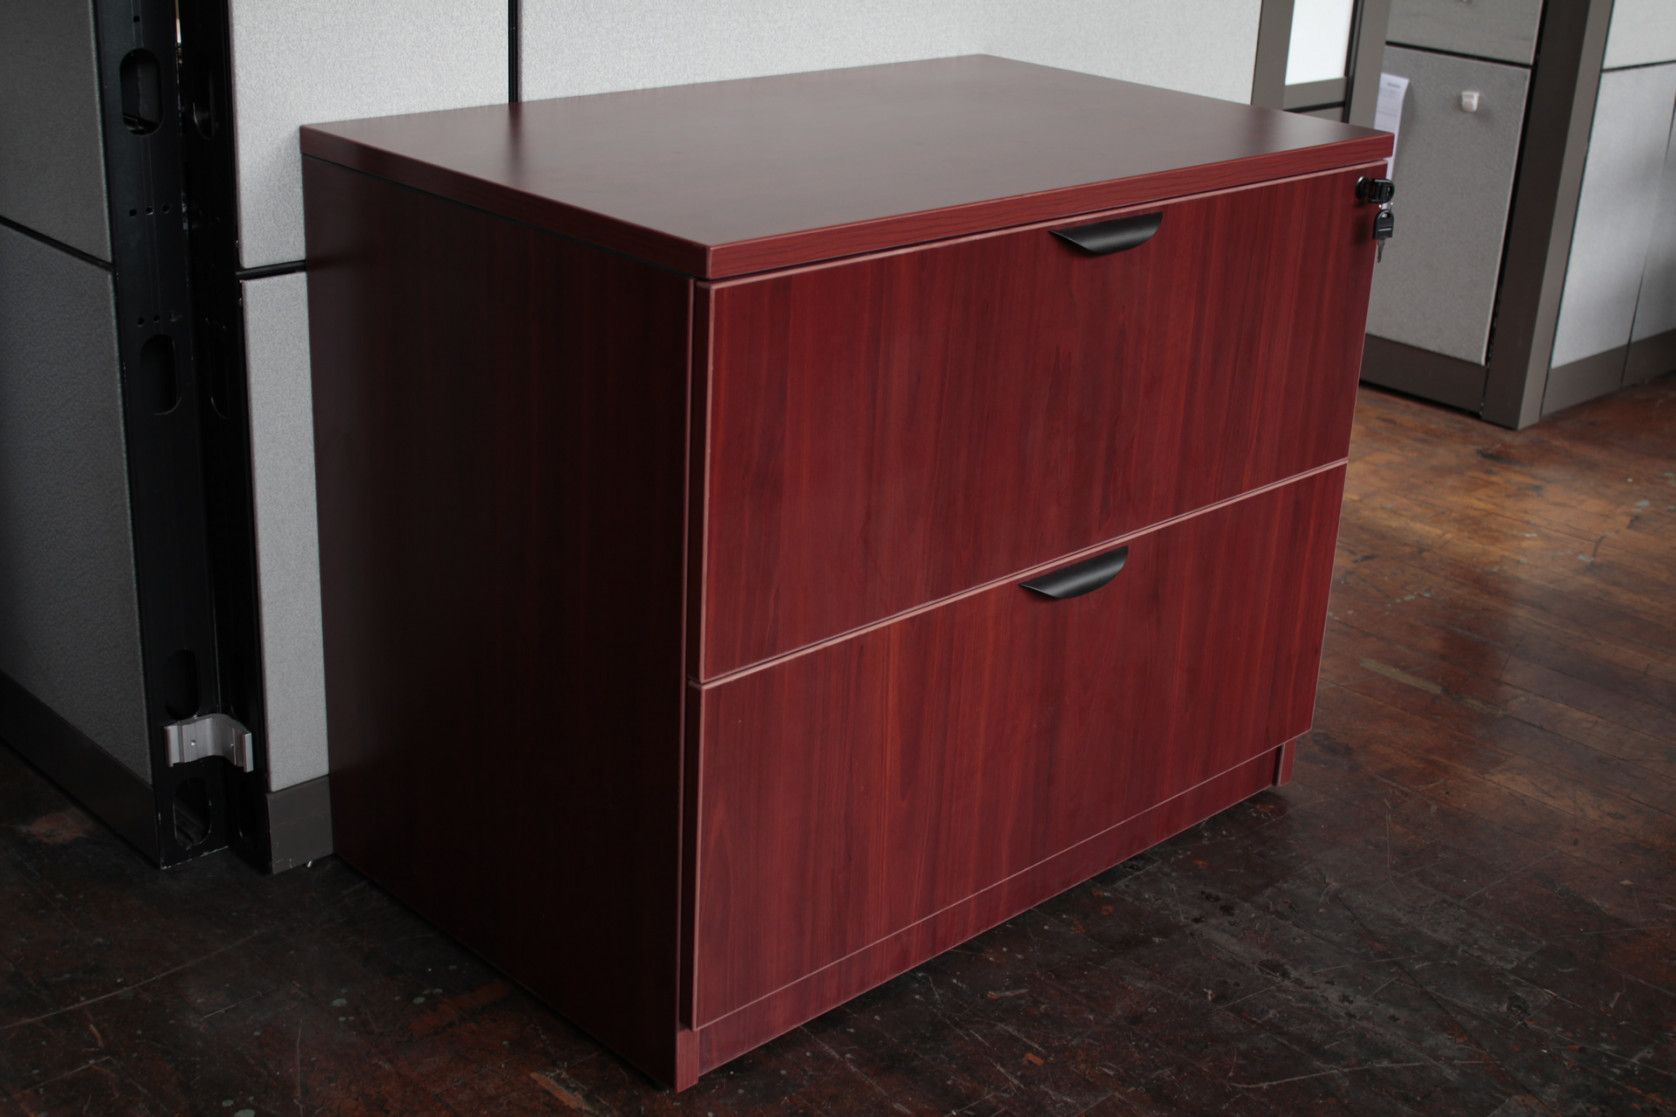 2019 Cherry Wood Lateral File Cabinet Kitchen Floor Vinyl Ideas Check More At Http